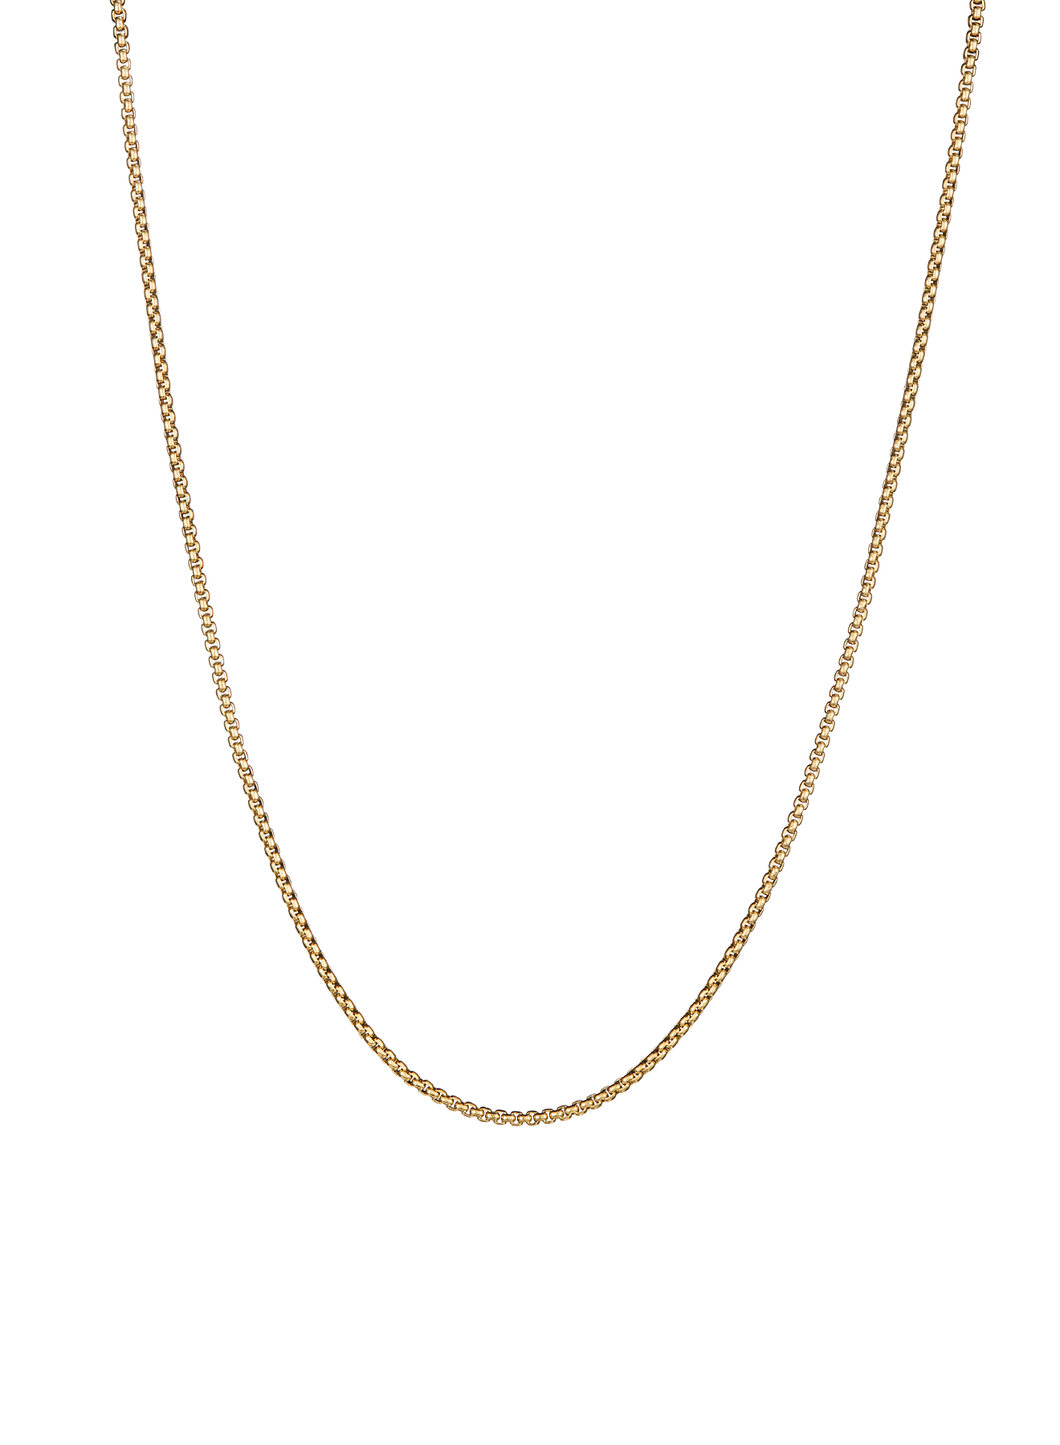 Jenny Bird - Francis Necklace in Gold